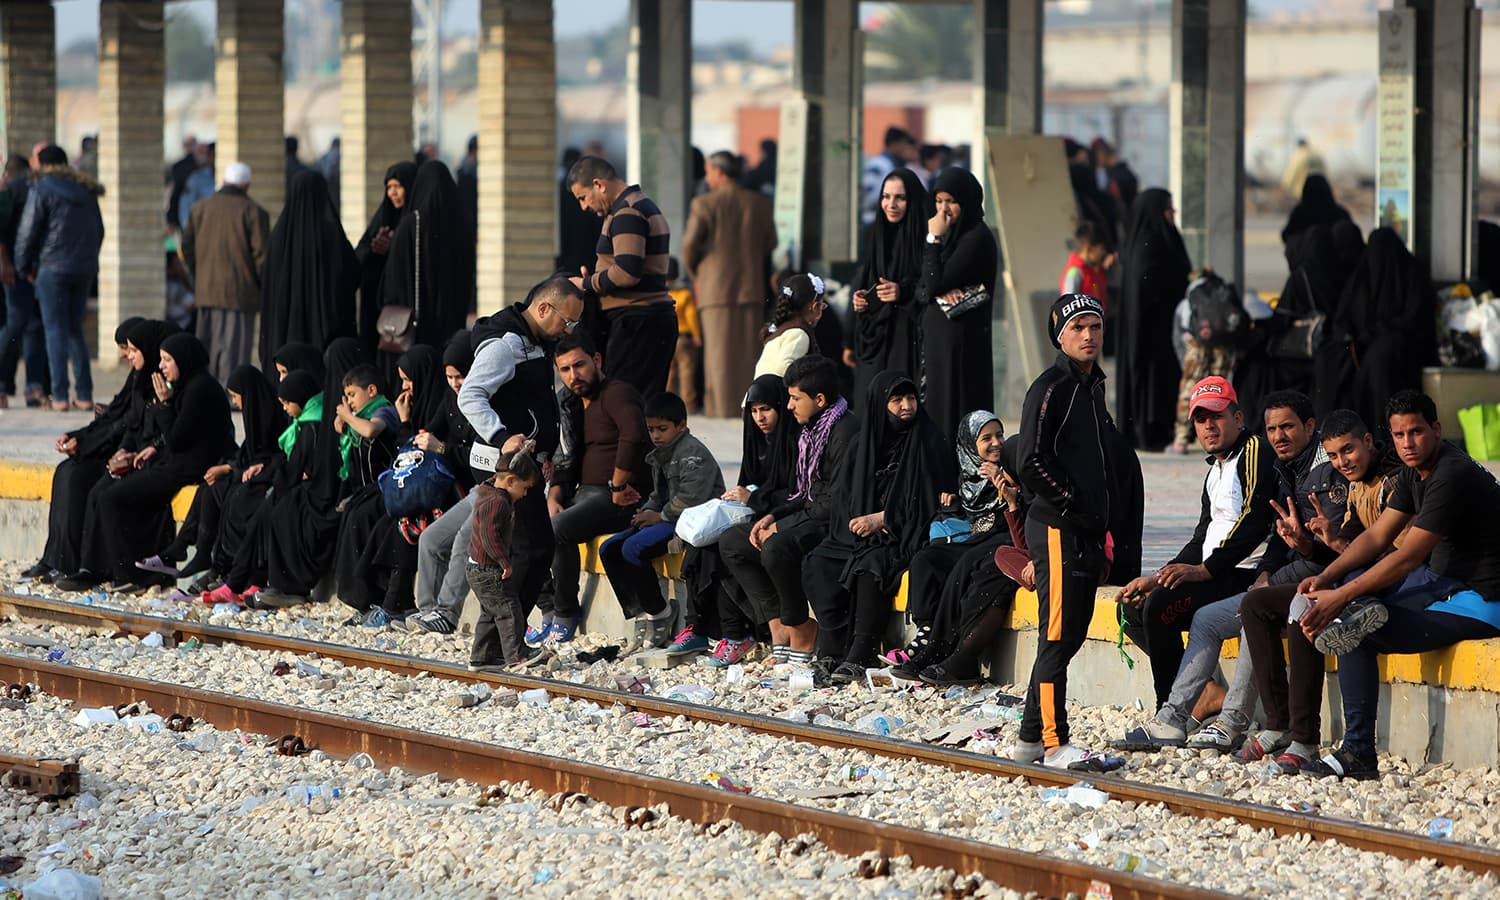 Shias pilgrims wait to board a train at Baghdad central station. Thousands of Shia faithful heading to and returning from the holy city of Karbala have been massing in central Baghdad station in the days running up to the culmination of Arbaeen. —AFP